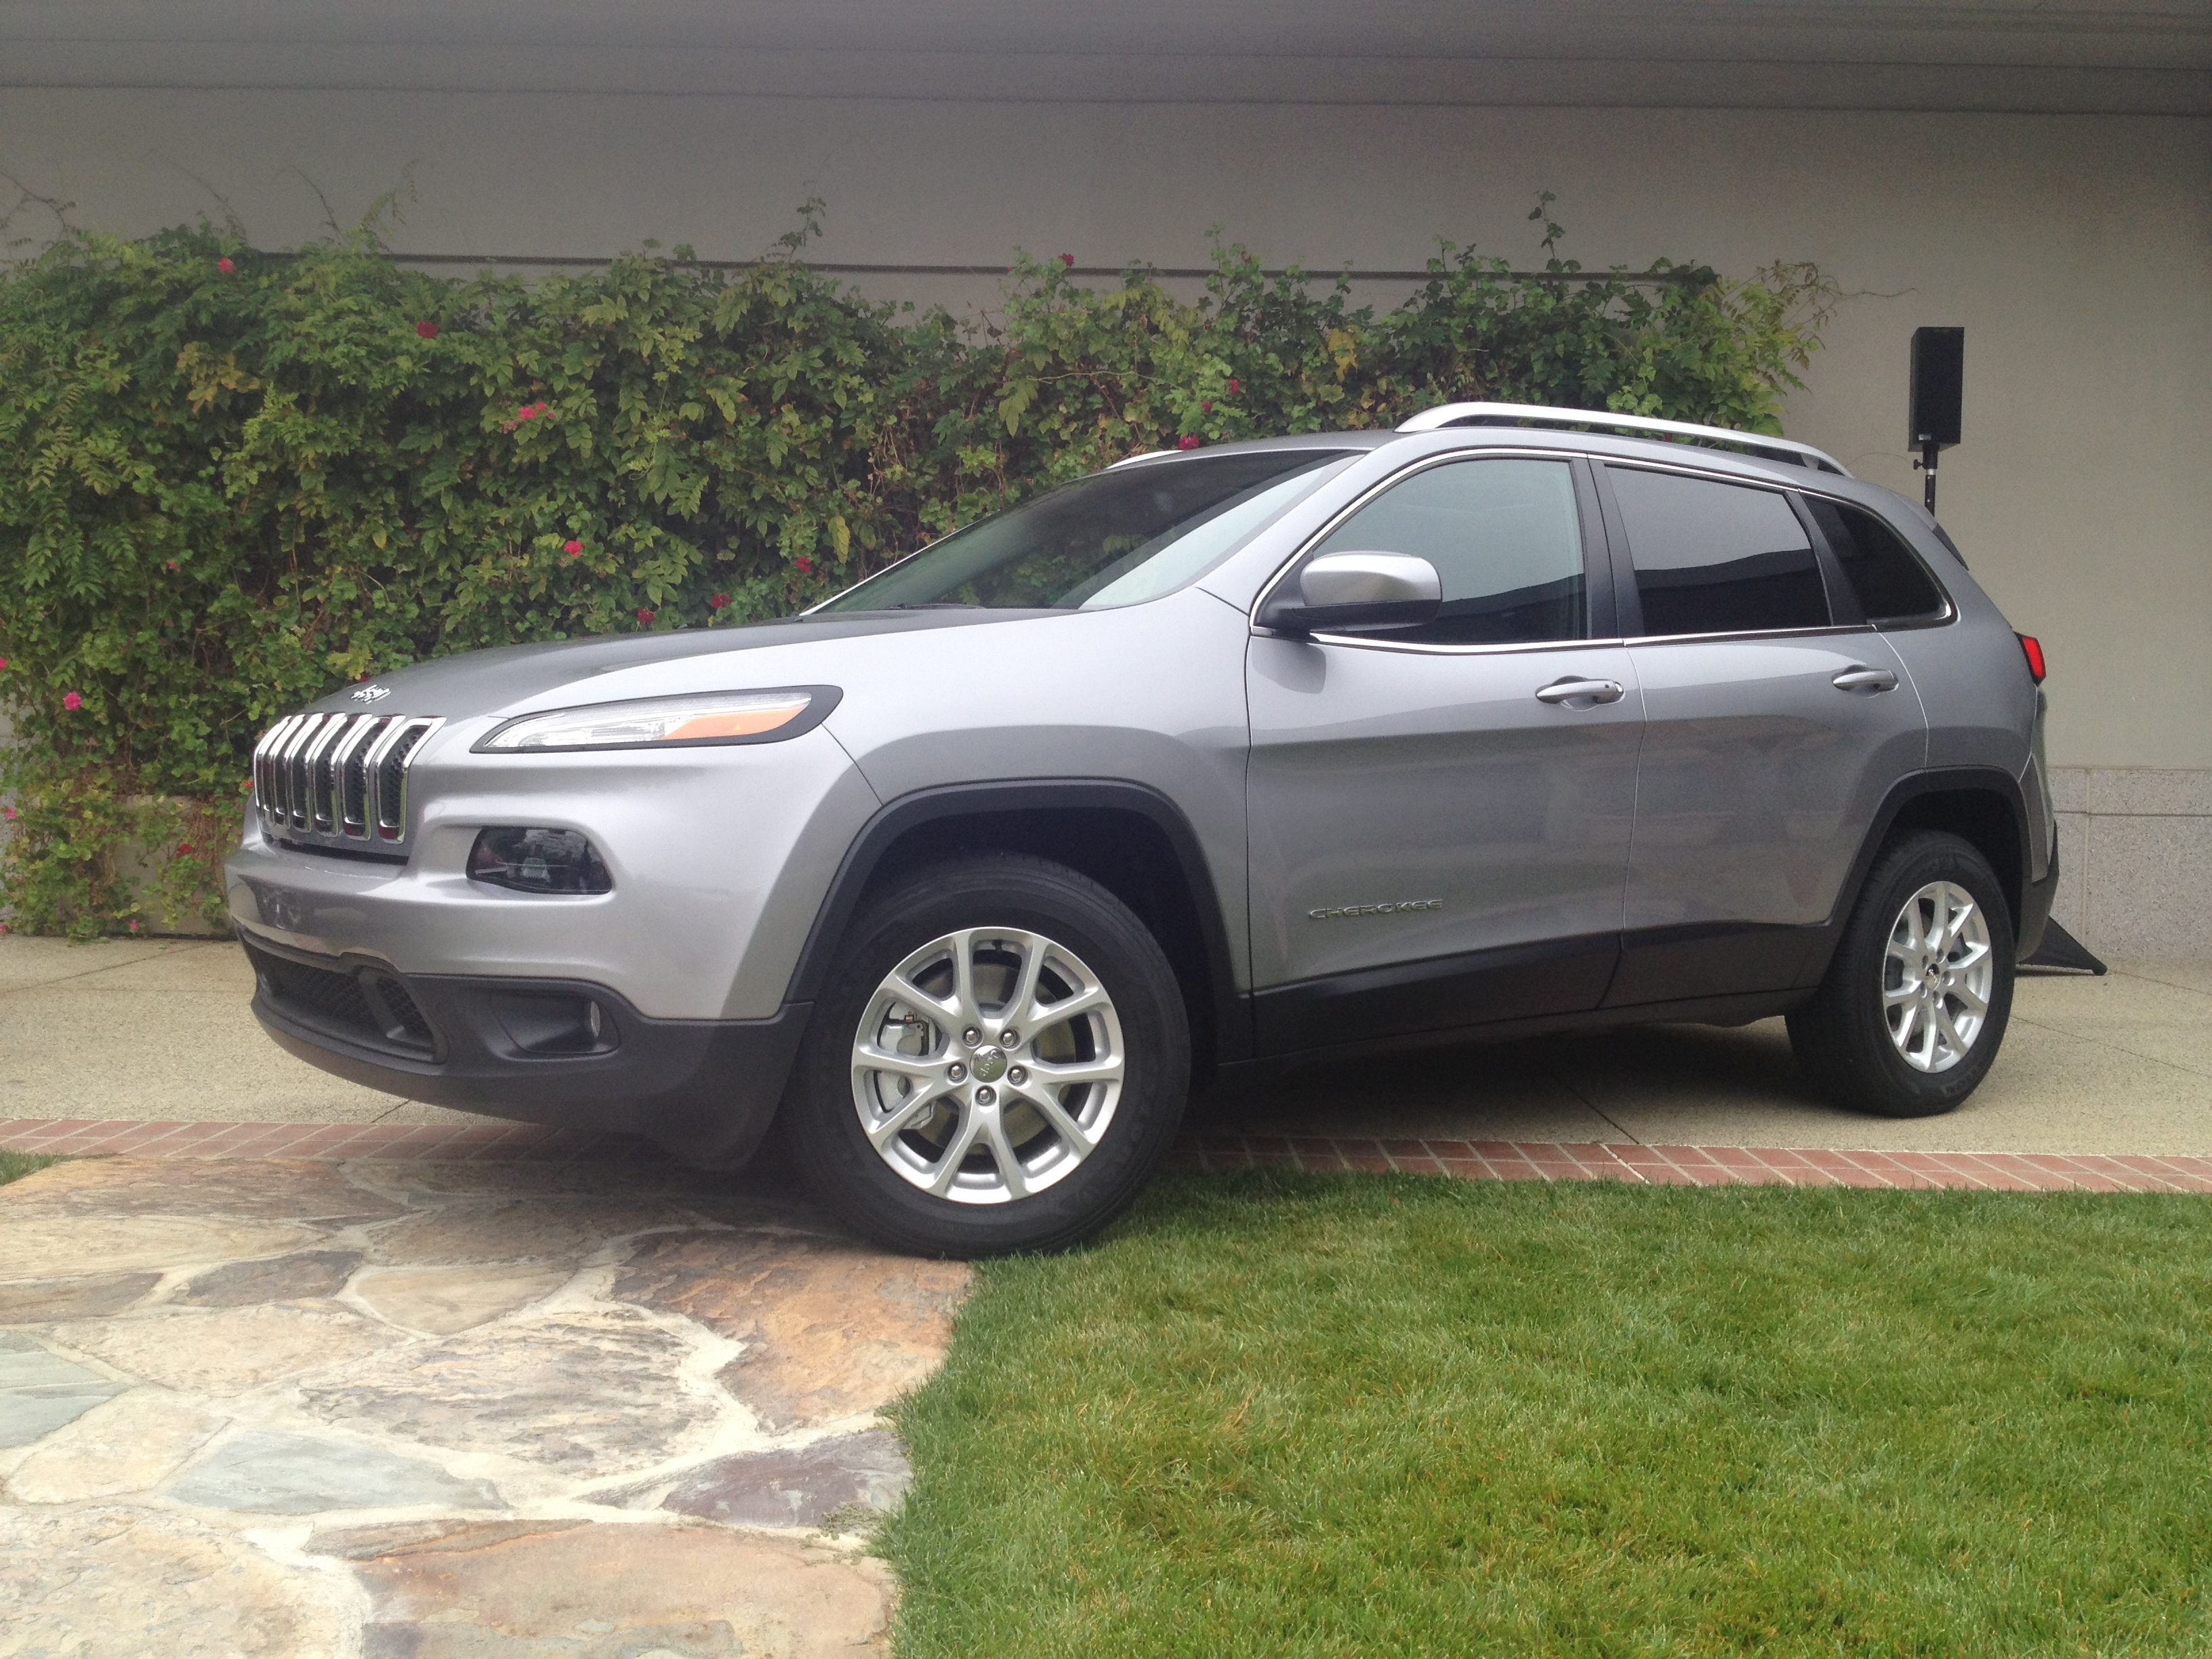 htm used jeep foster featured cars sales in motors vermont sport suv middlebury vehicles compass